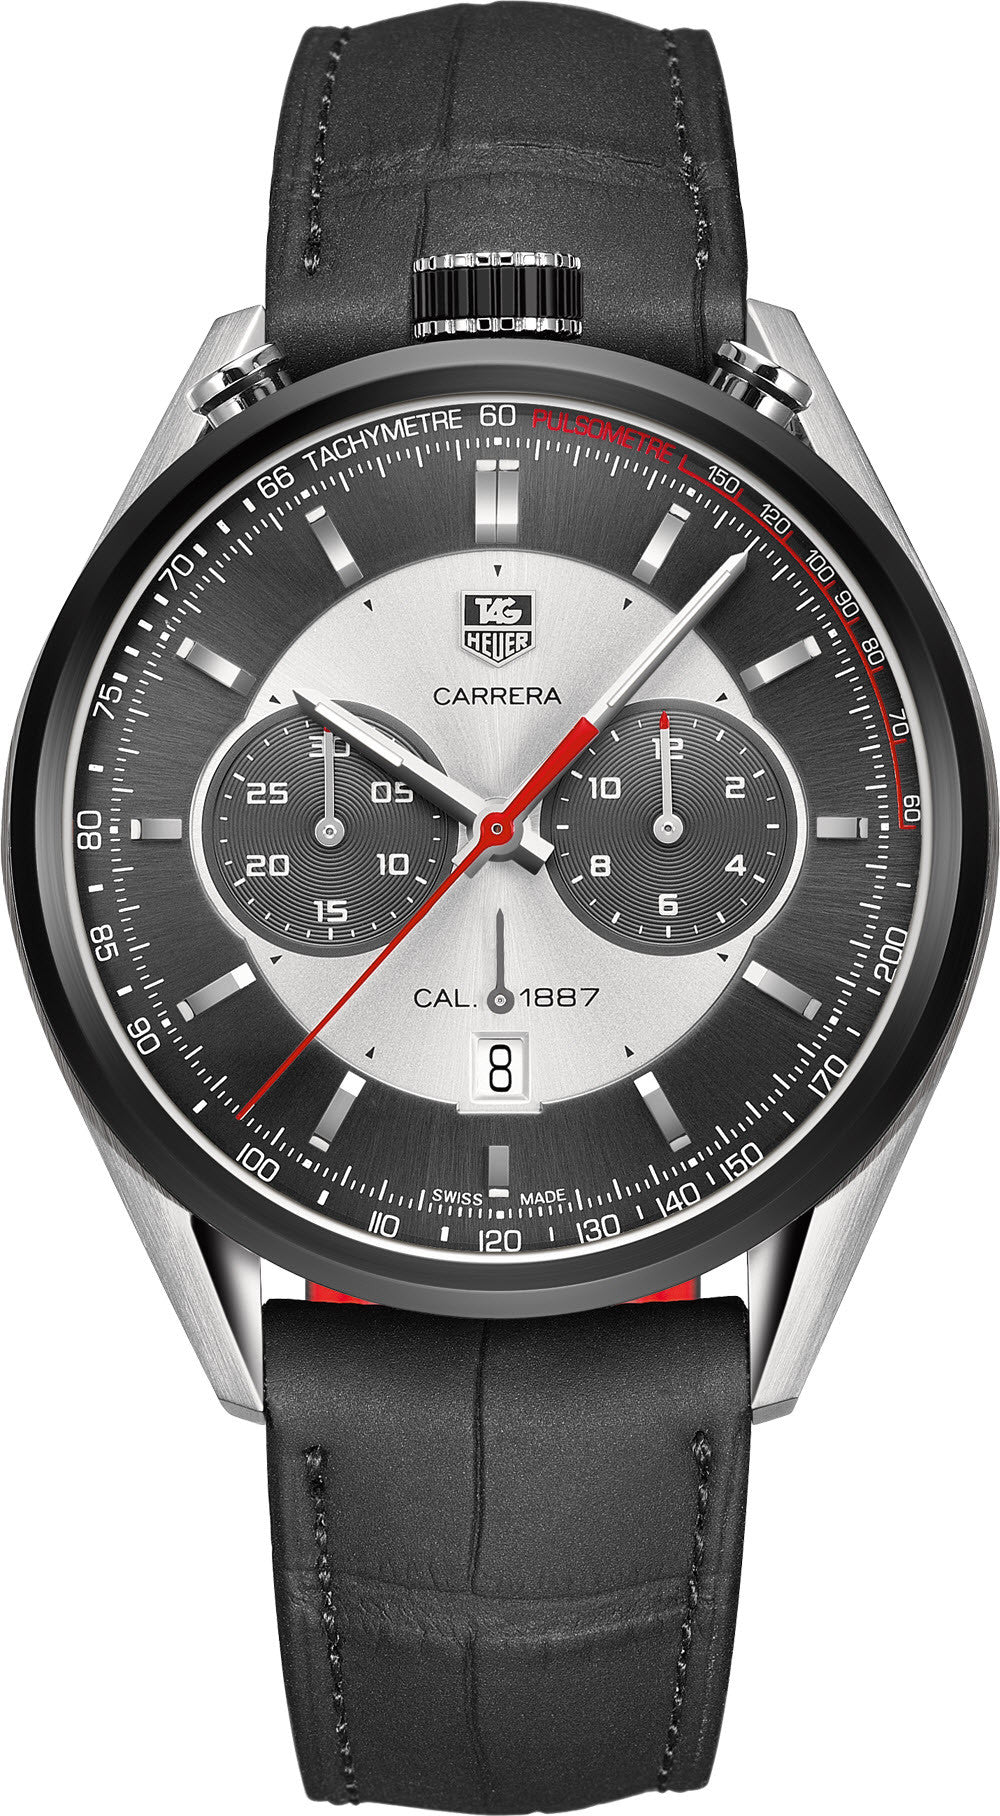 TAG Heuer Watch Jack Heuer Edition Carrera 1887